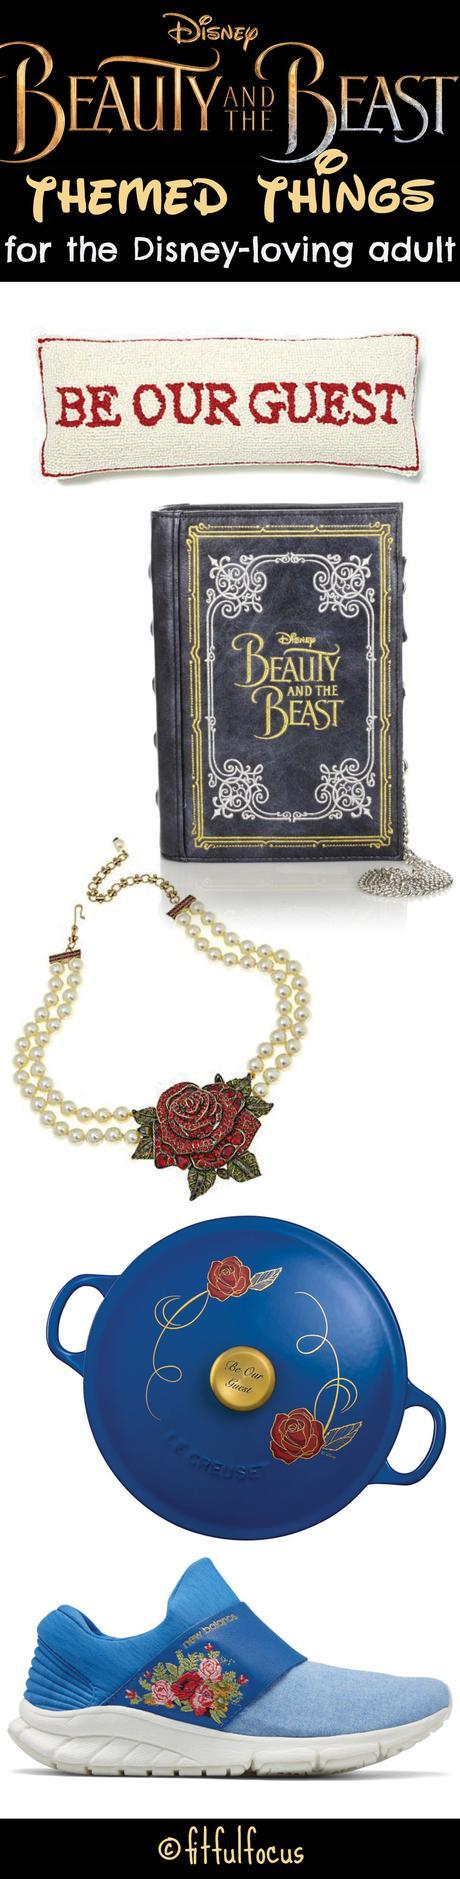 Beauty & The Beast Themed Things For The Disney-Loving Adult